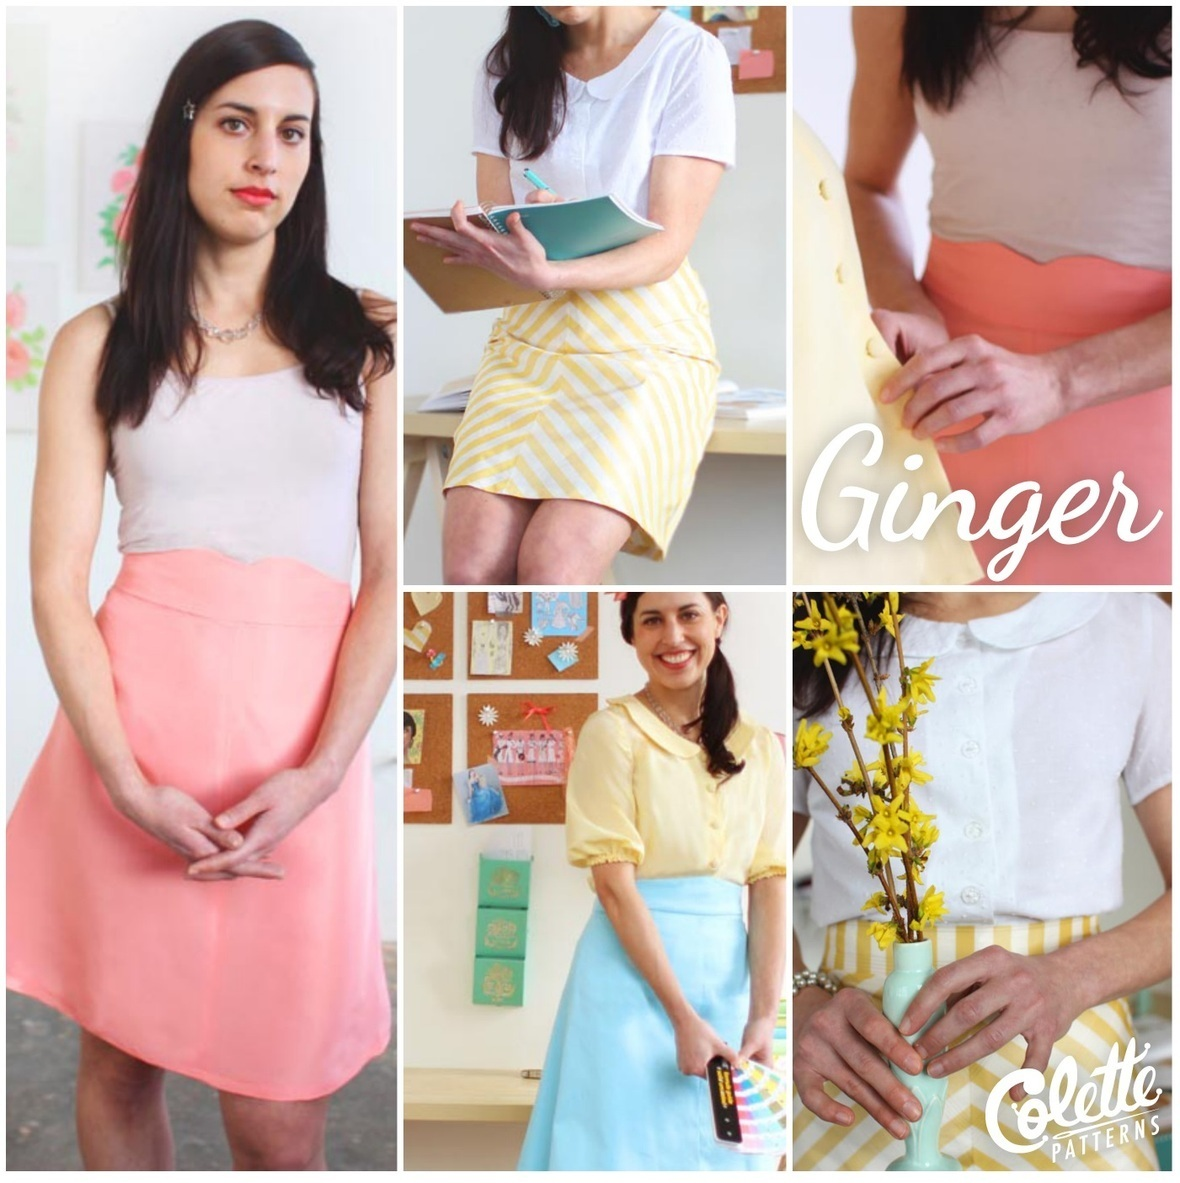 colette patterns ginger skirt sewing pattern